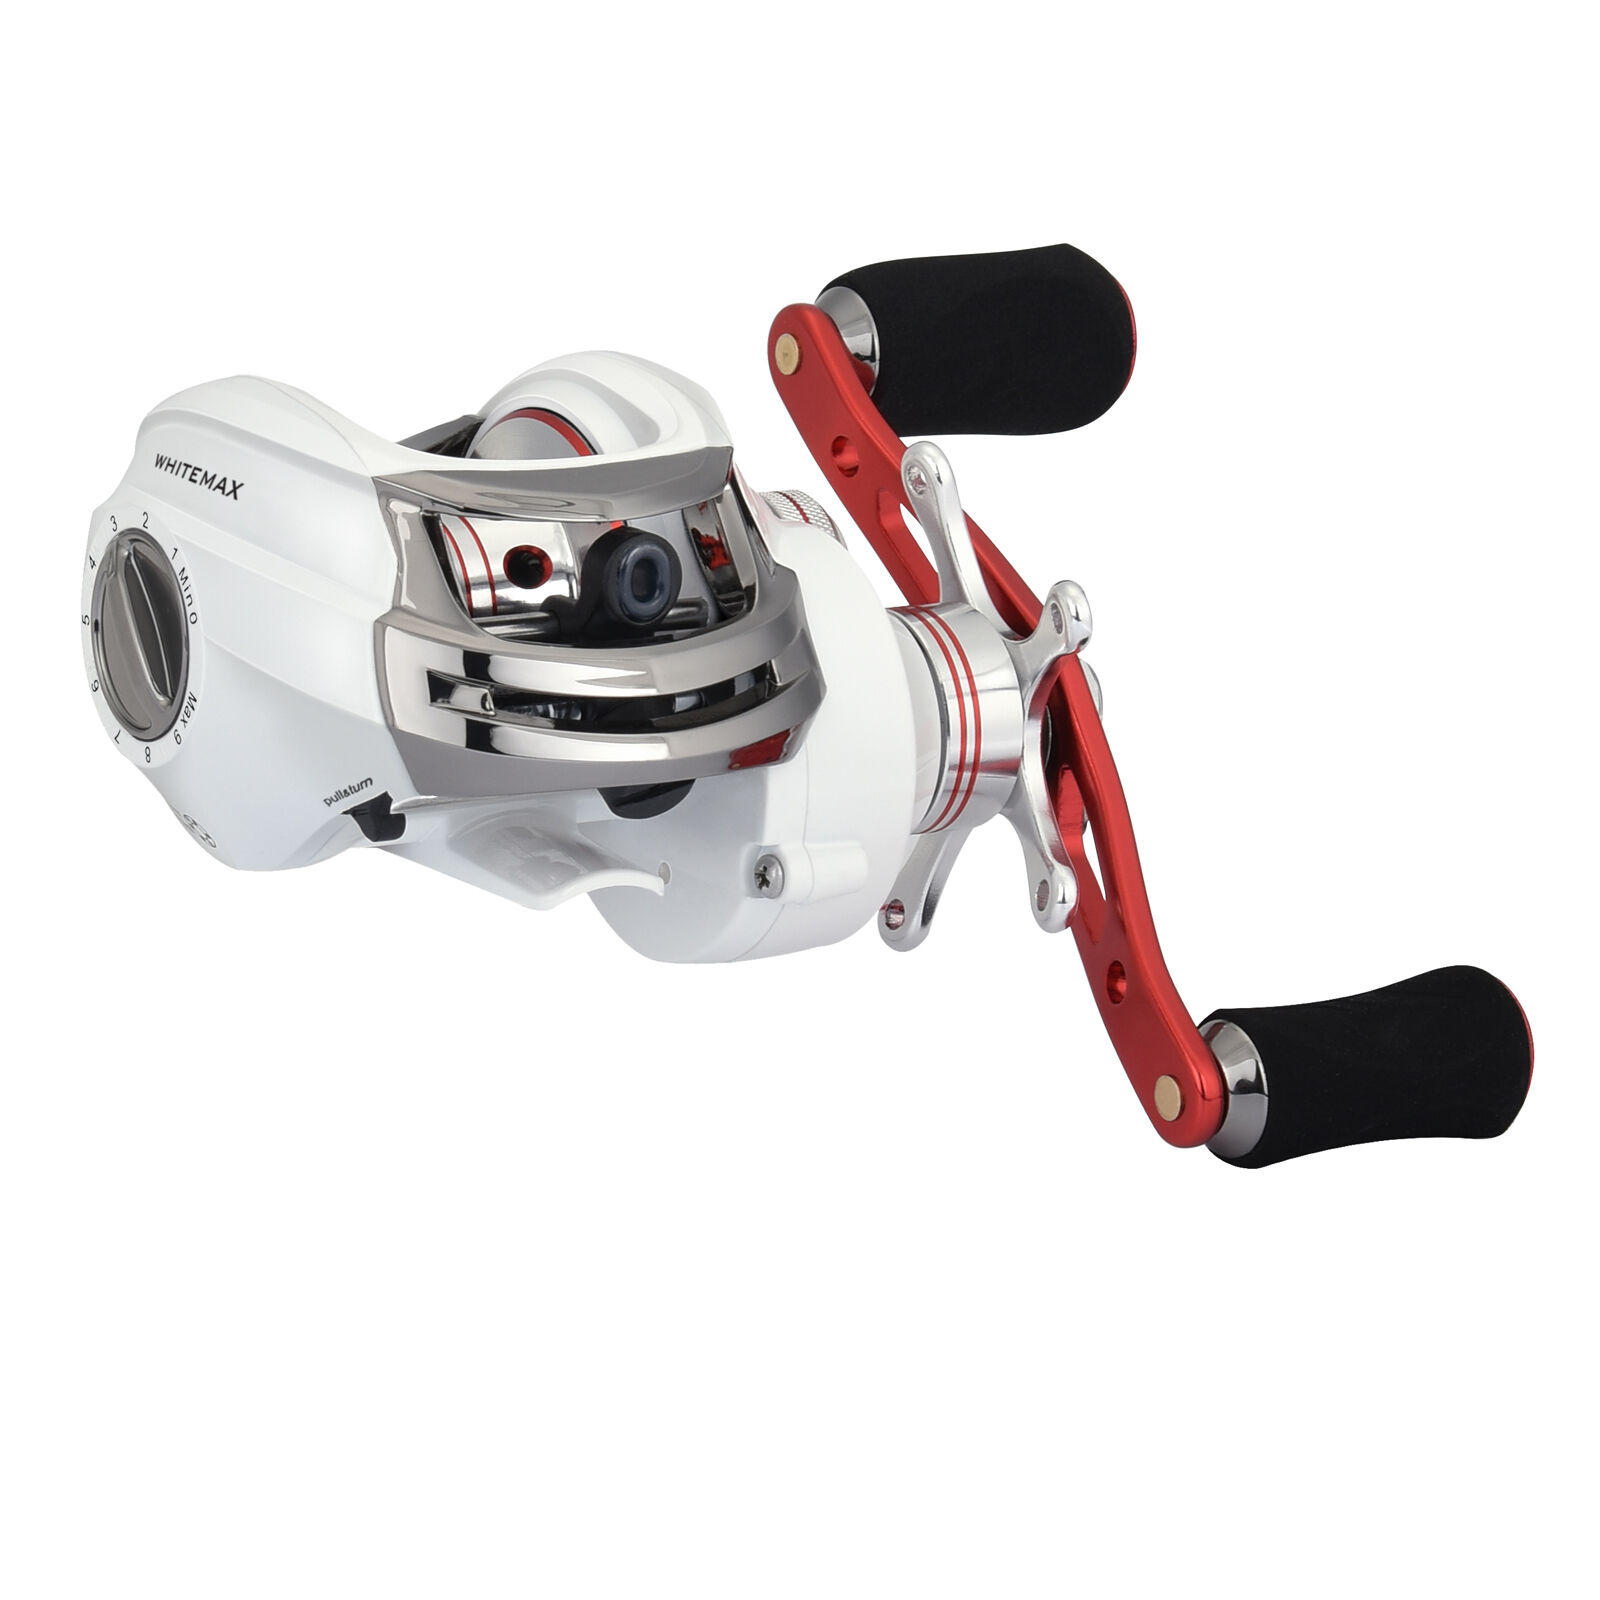 KastKing WhiteMax Baitcasting Reel Freshwater Fishing  Reels for Lure Fishing  manufacturers direct supply